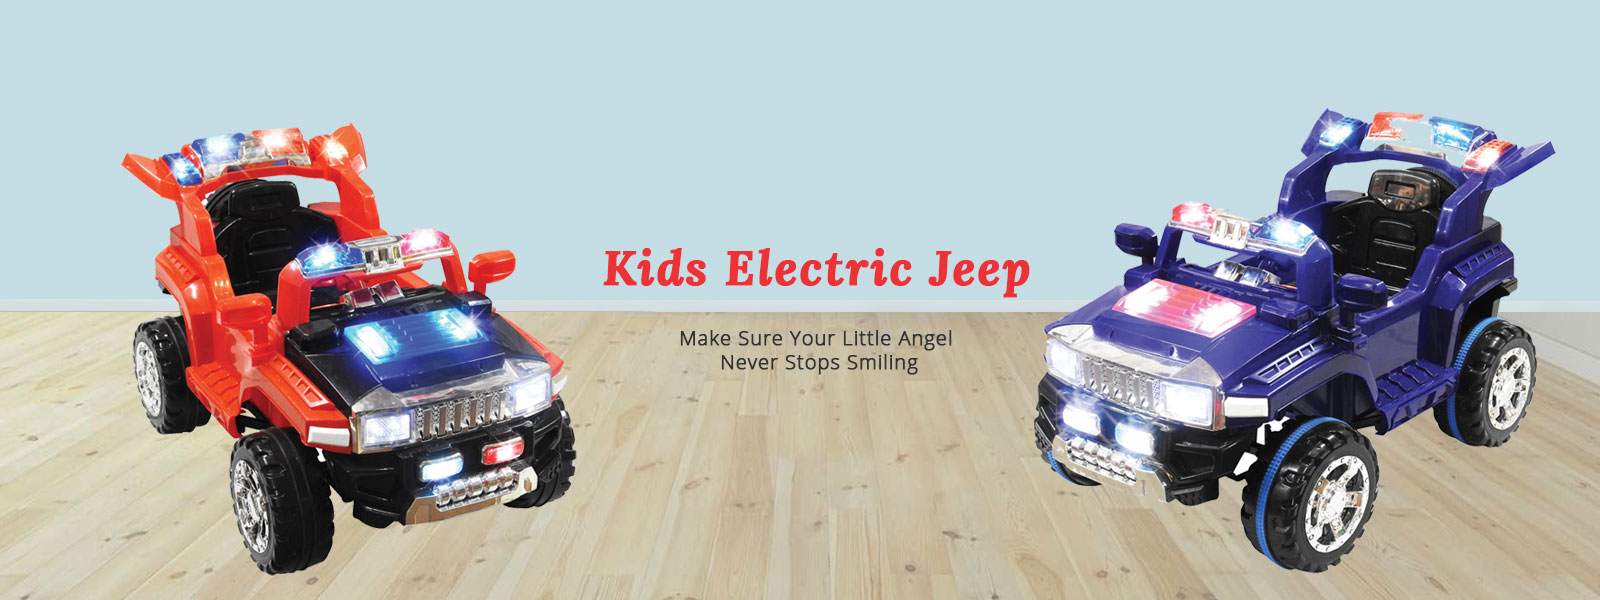 Kids Electric Jeep Manufacturers in Thrissur